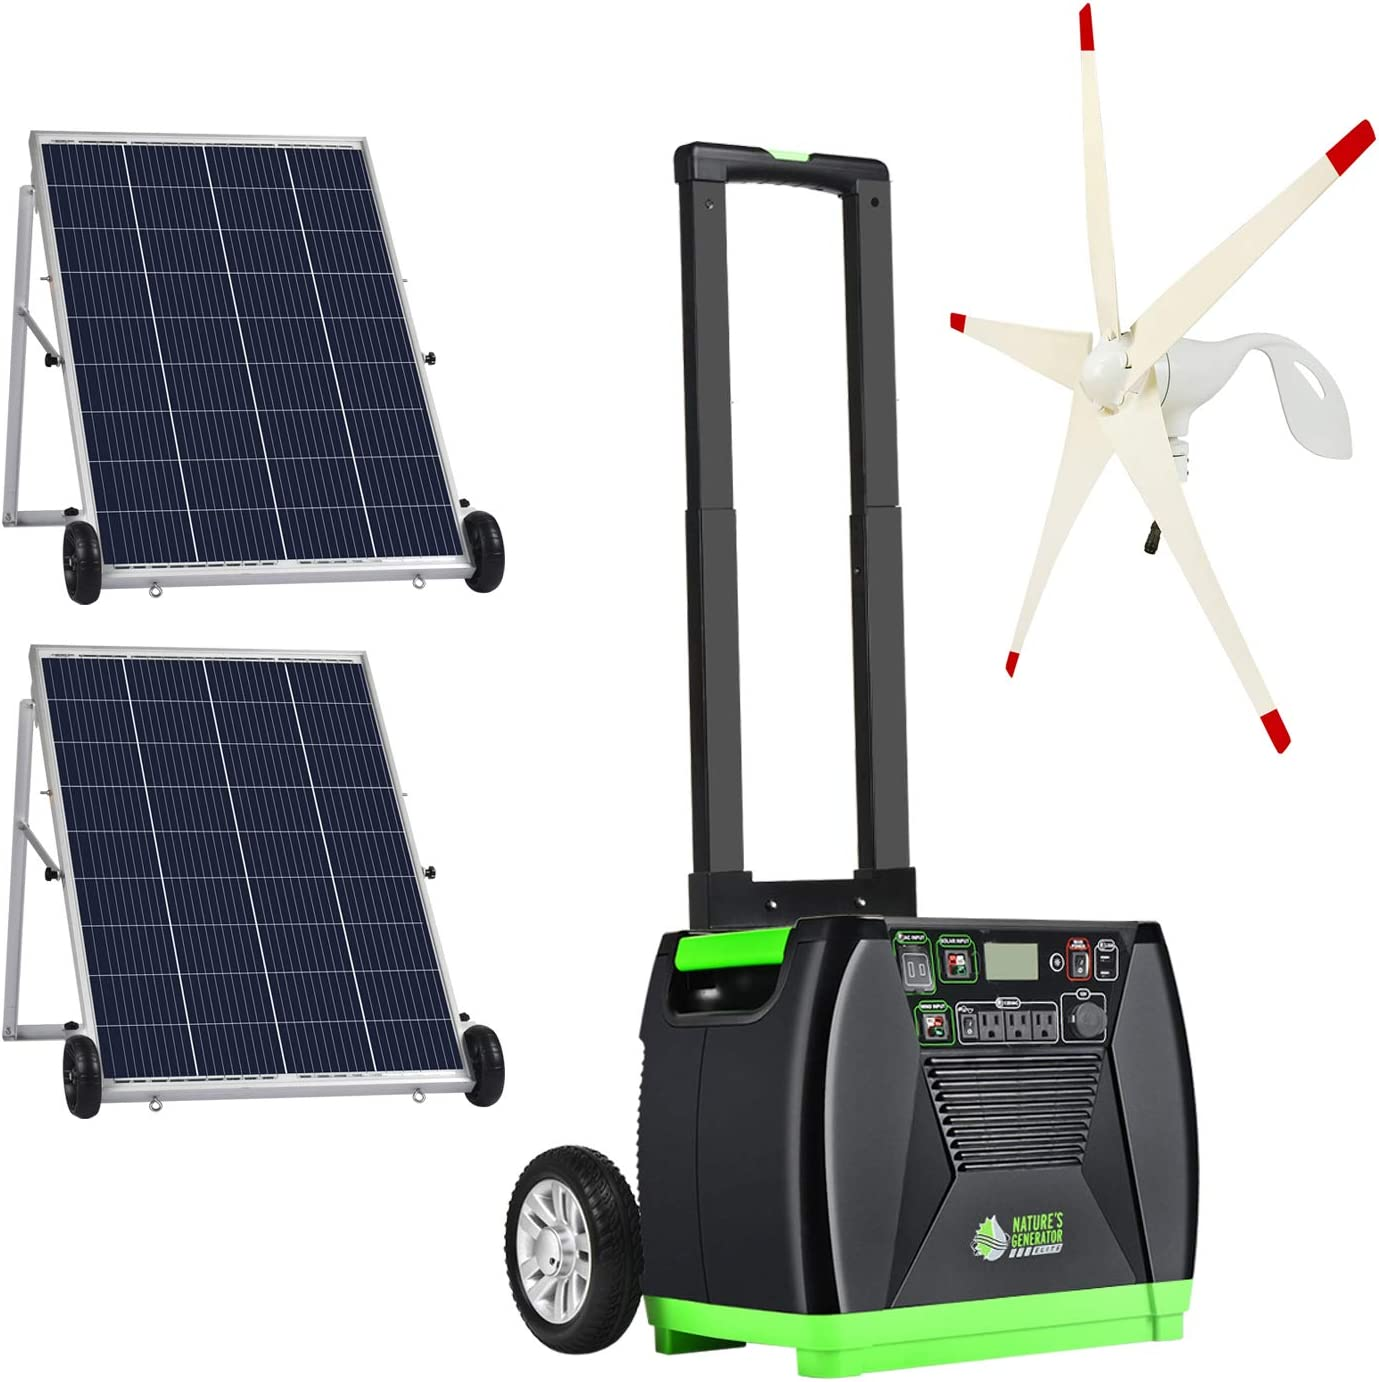 Our shop most popular Nature's Generator Elite Gold - Wind Pow System:3600W Solar Import WE